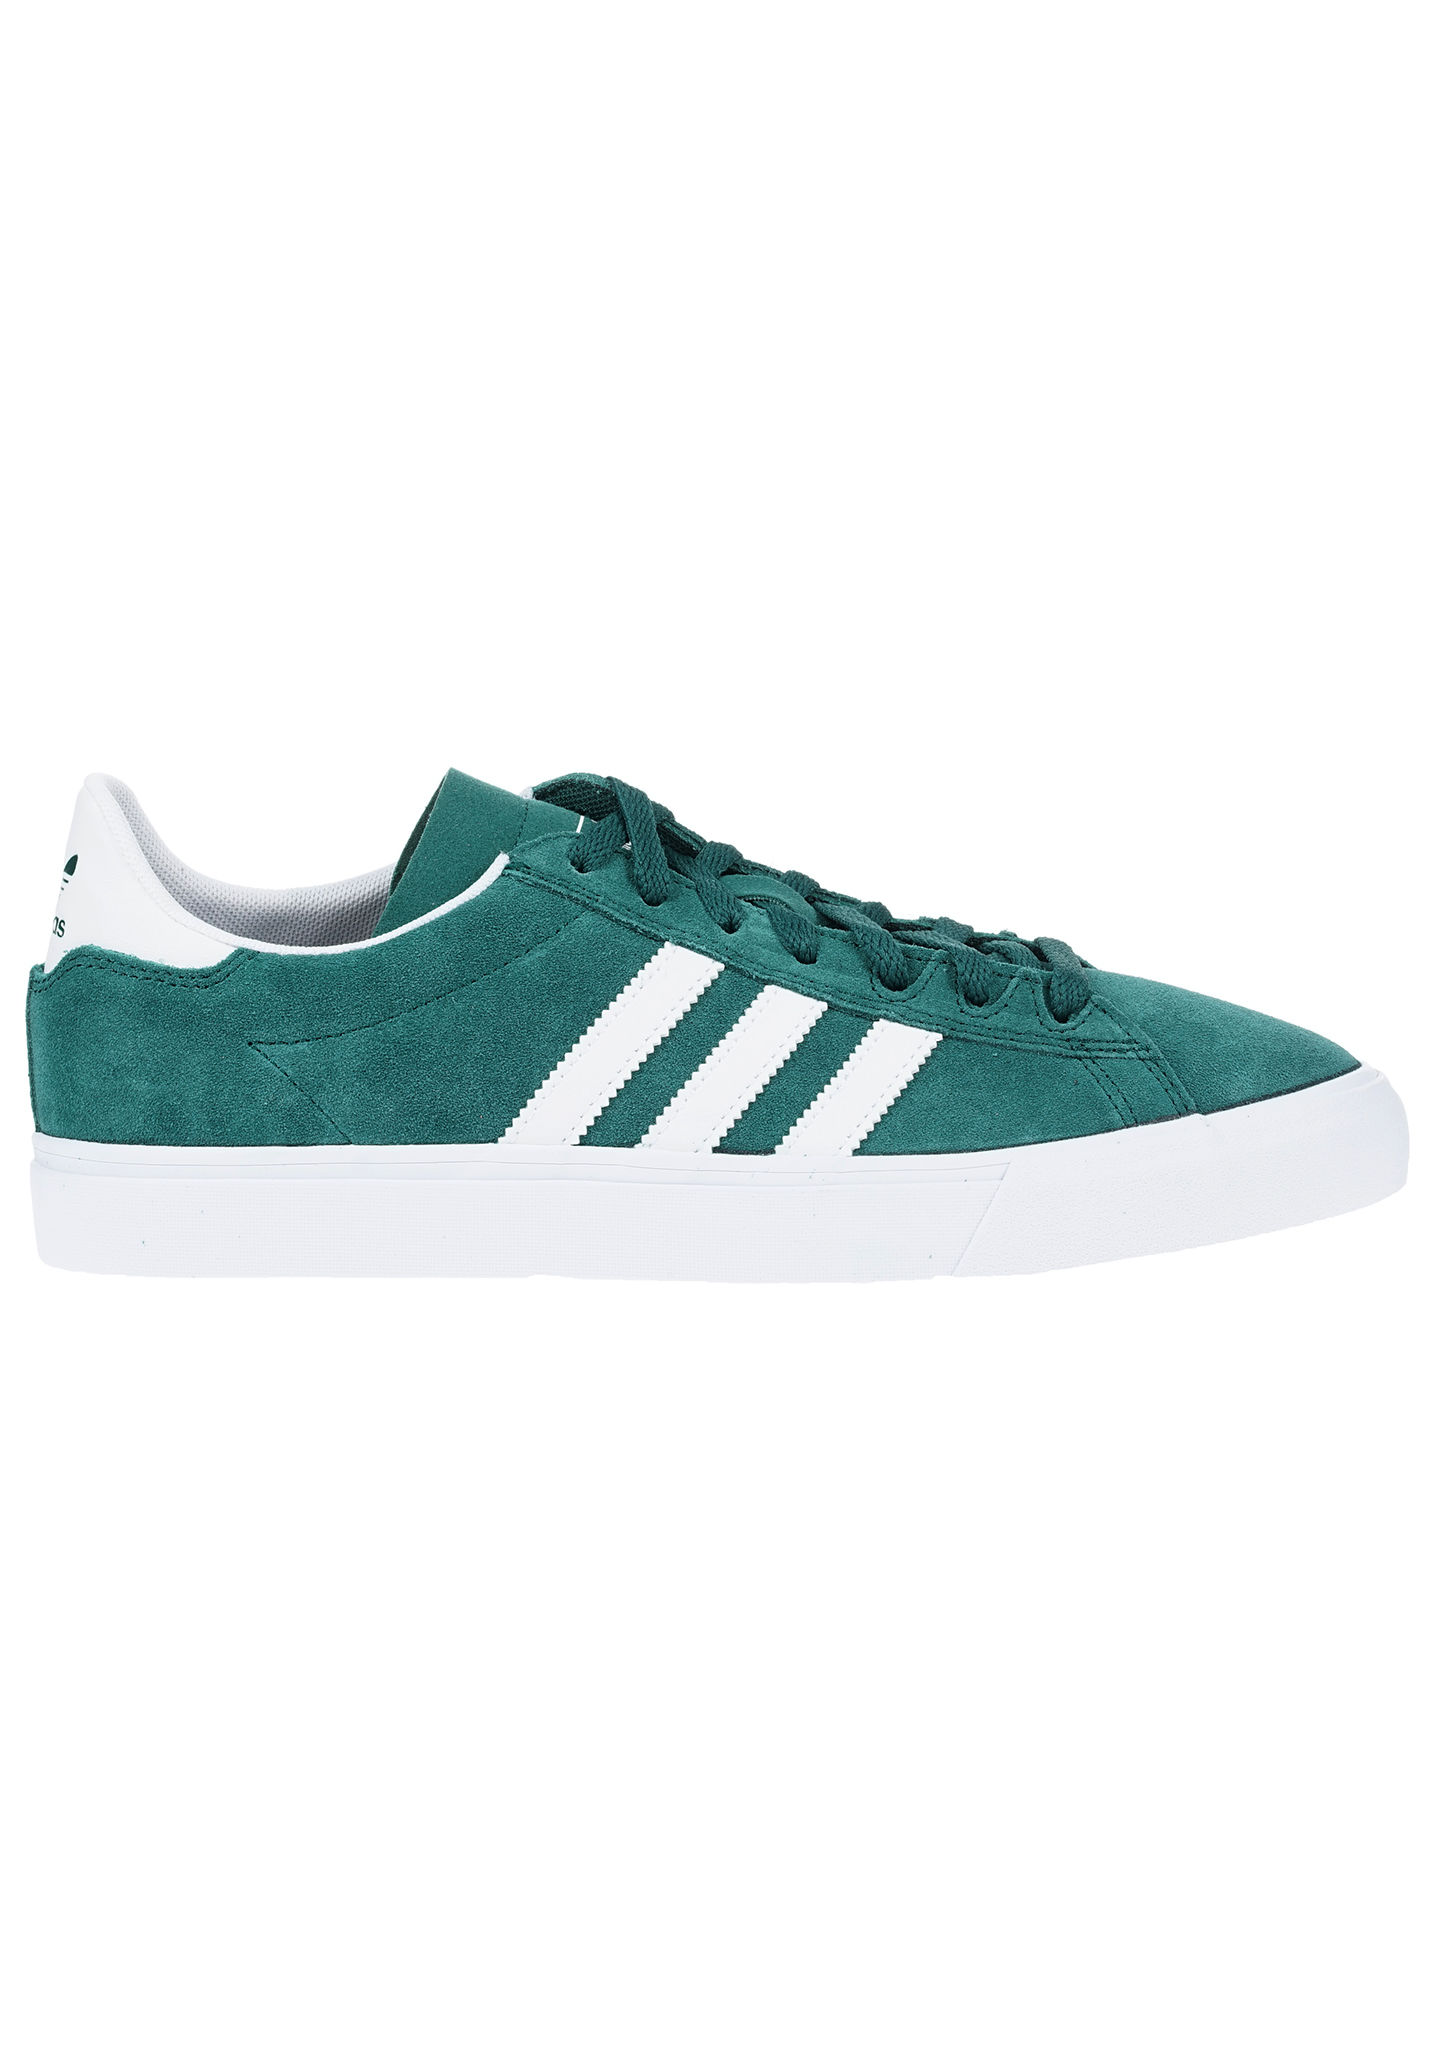 save off 1aa37 9f6bc Adidas Skateboarding Campus Vulc II ADV - Sneaker per Uomo - Verde - Planet  Sports